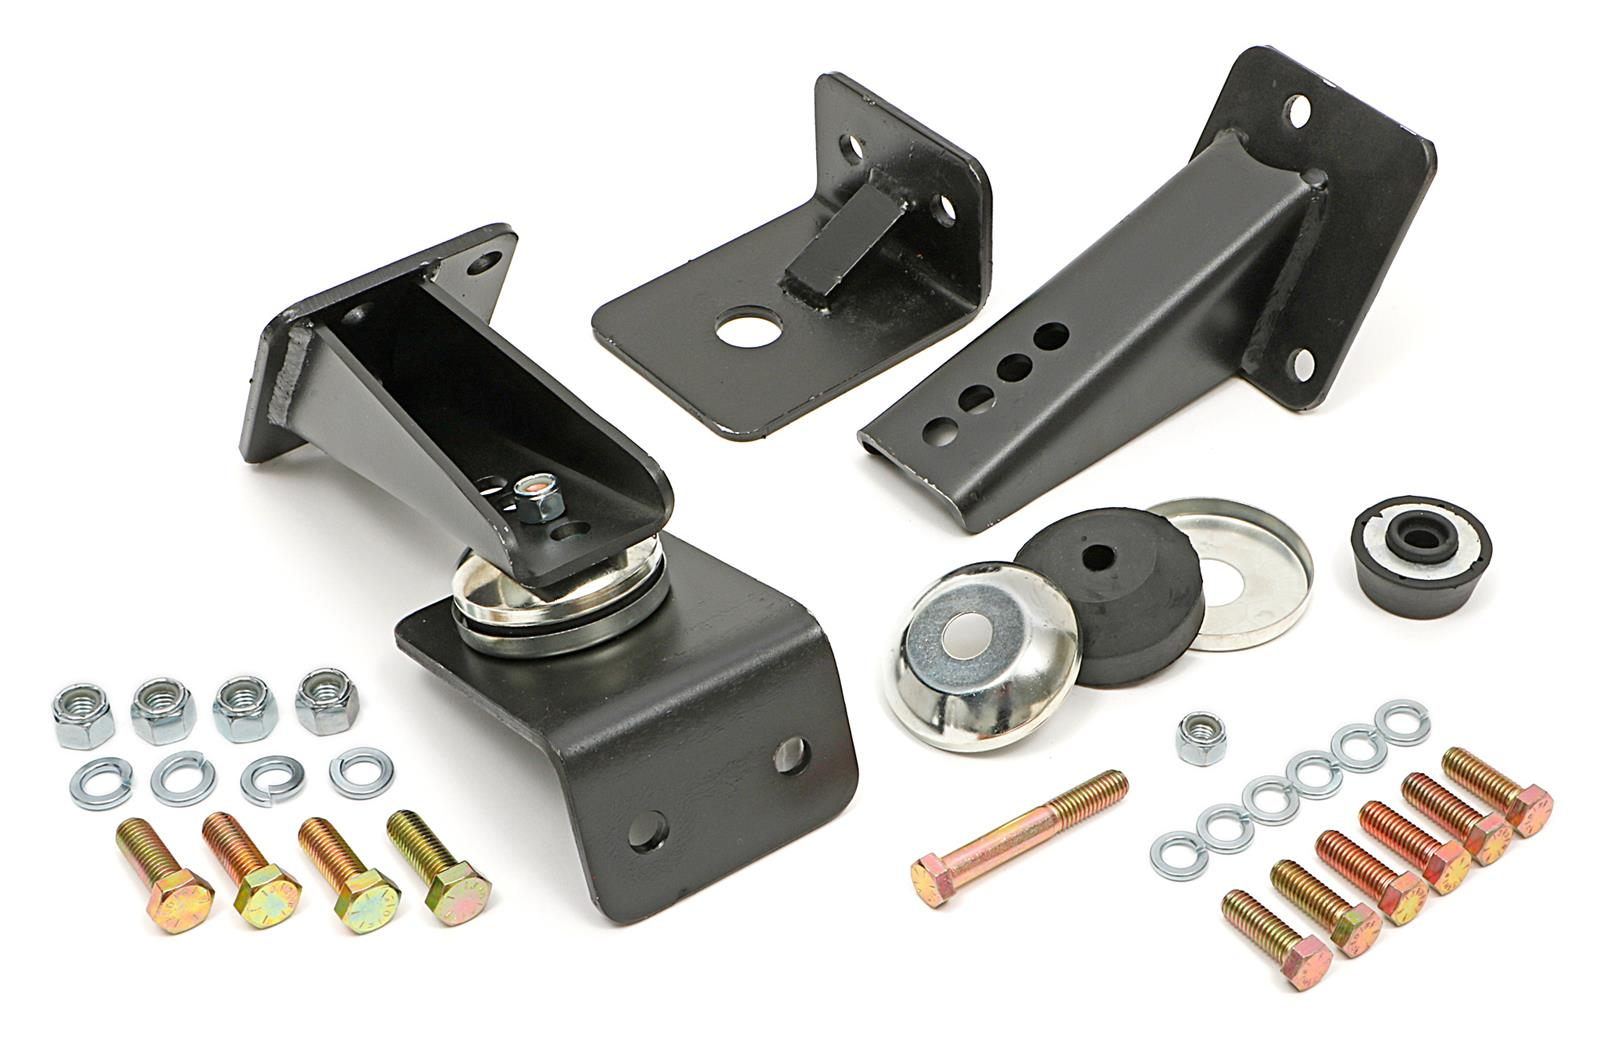 F  Pickup Trans Dapt Performance Engine Swap Motor Mounts  Free Shipping On Orders Over  At Summit Racing